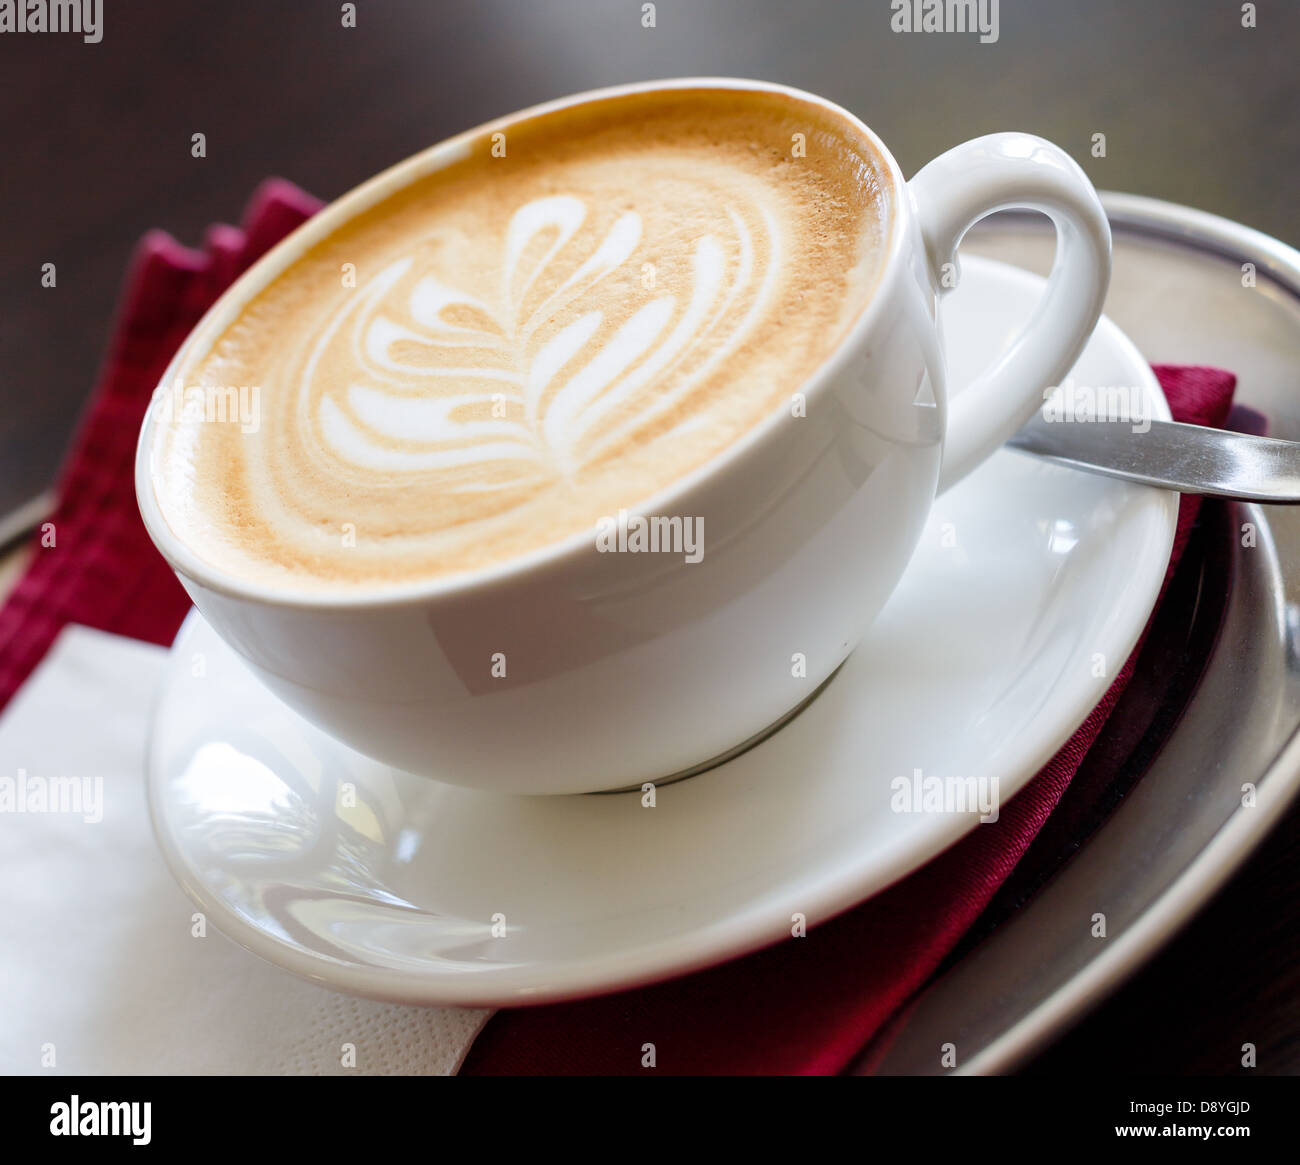 Coffee late with coffee art with a decorated tree in froth - Stock Image